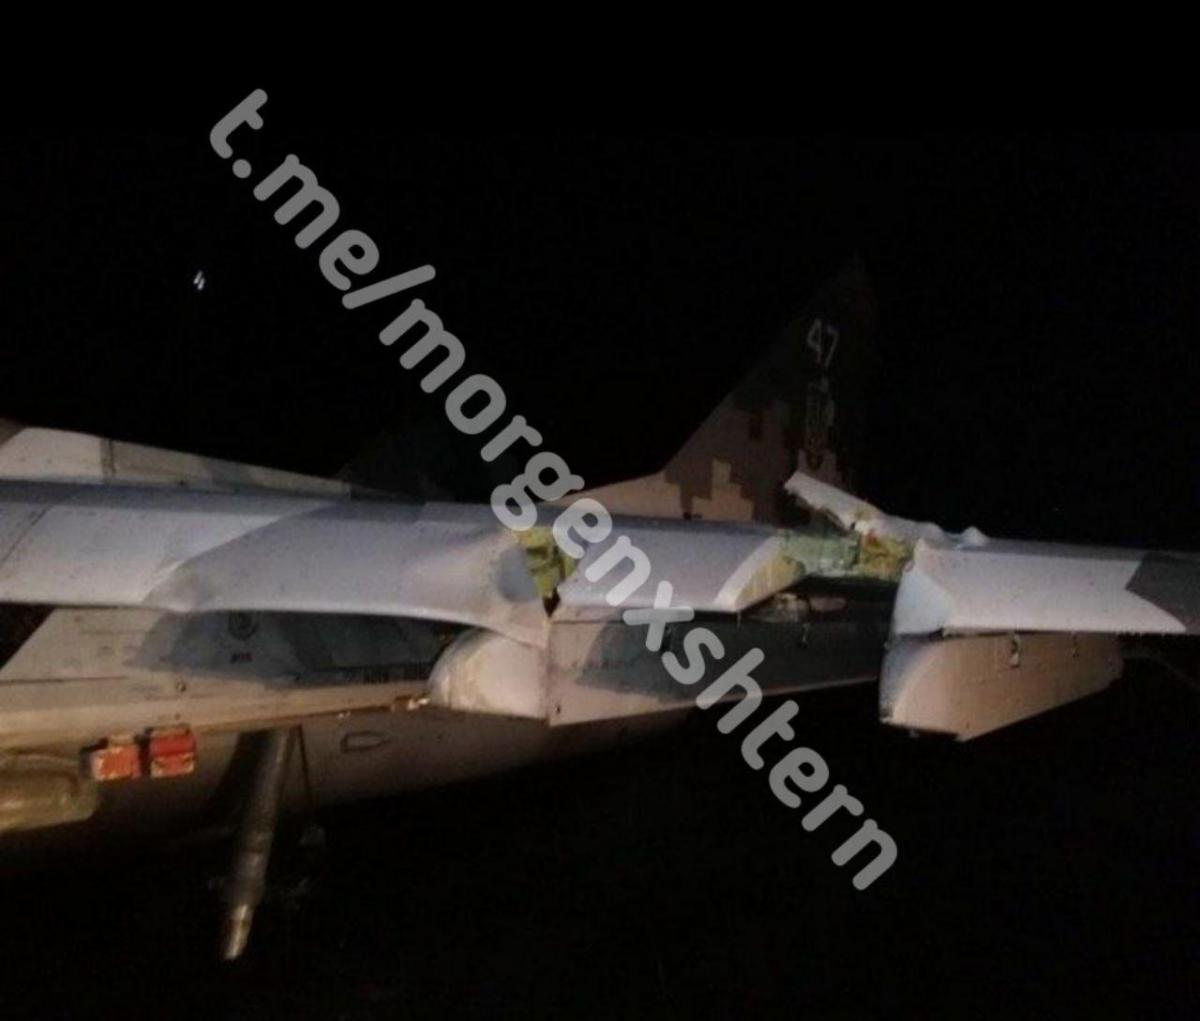 One of the jet's wings is damaged / Photo from t.me/morgenxshtern